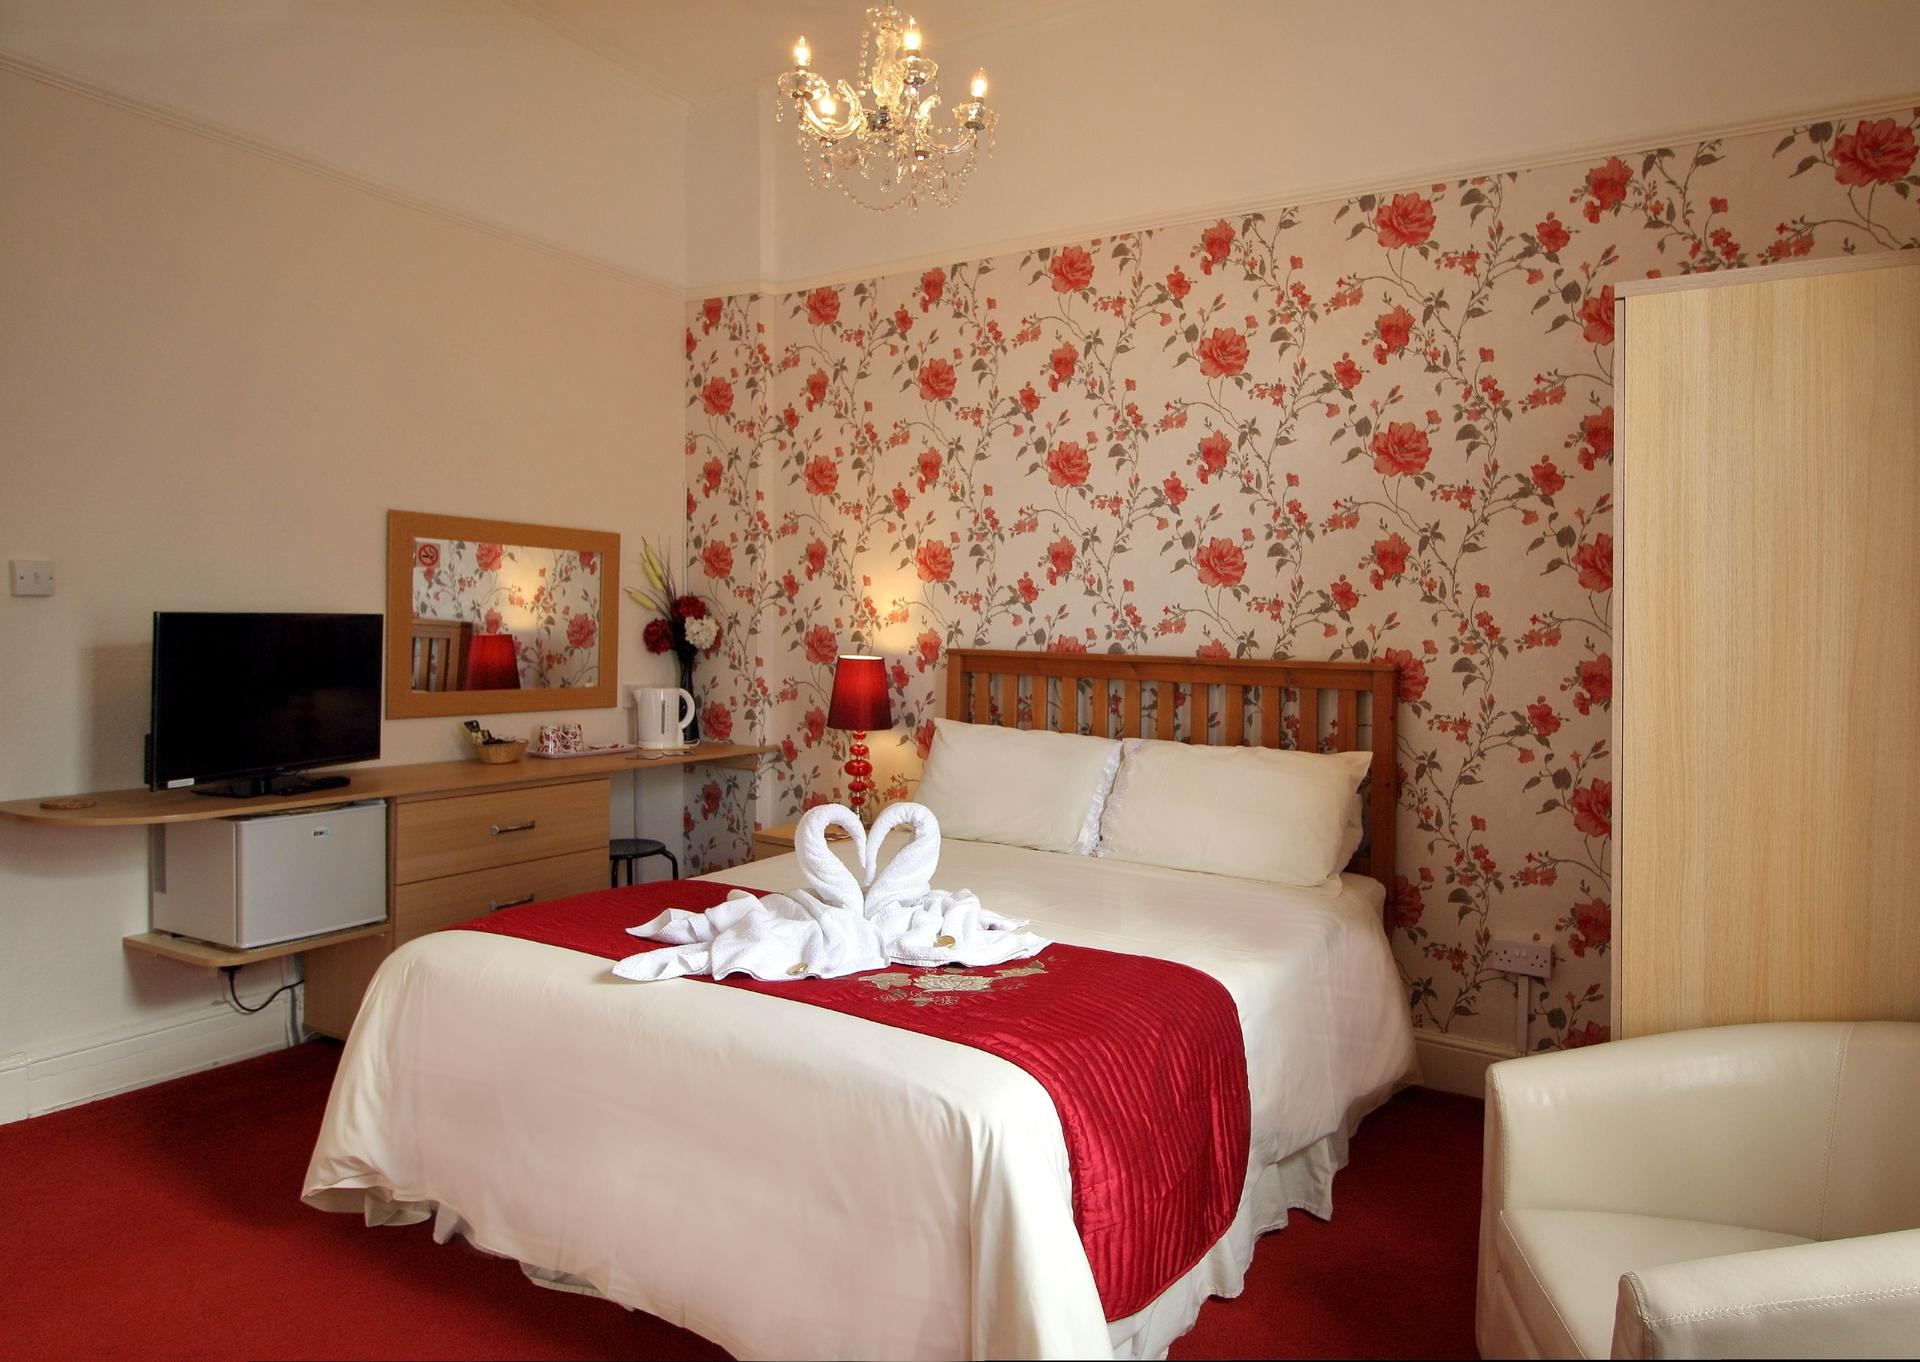 florence guest house 32 upper church road weston super mare